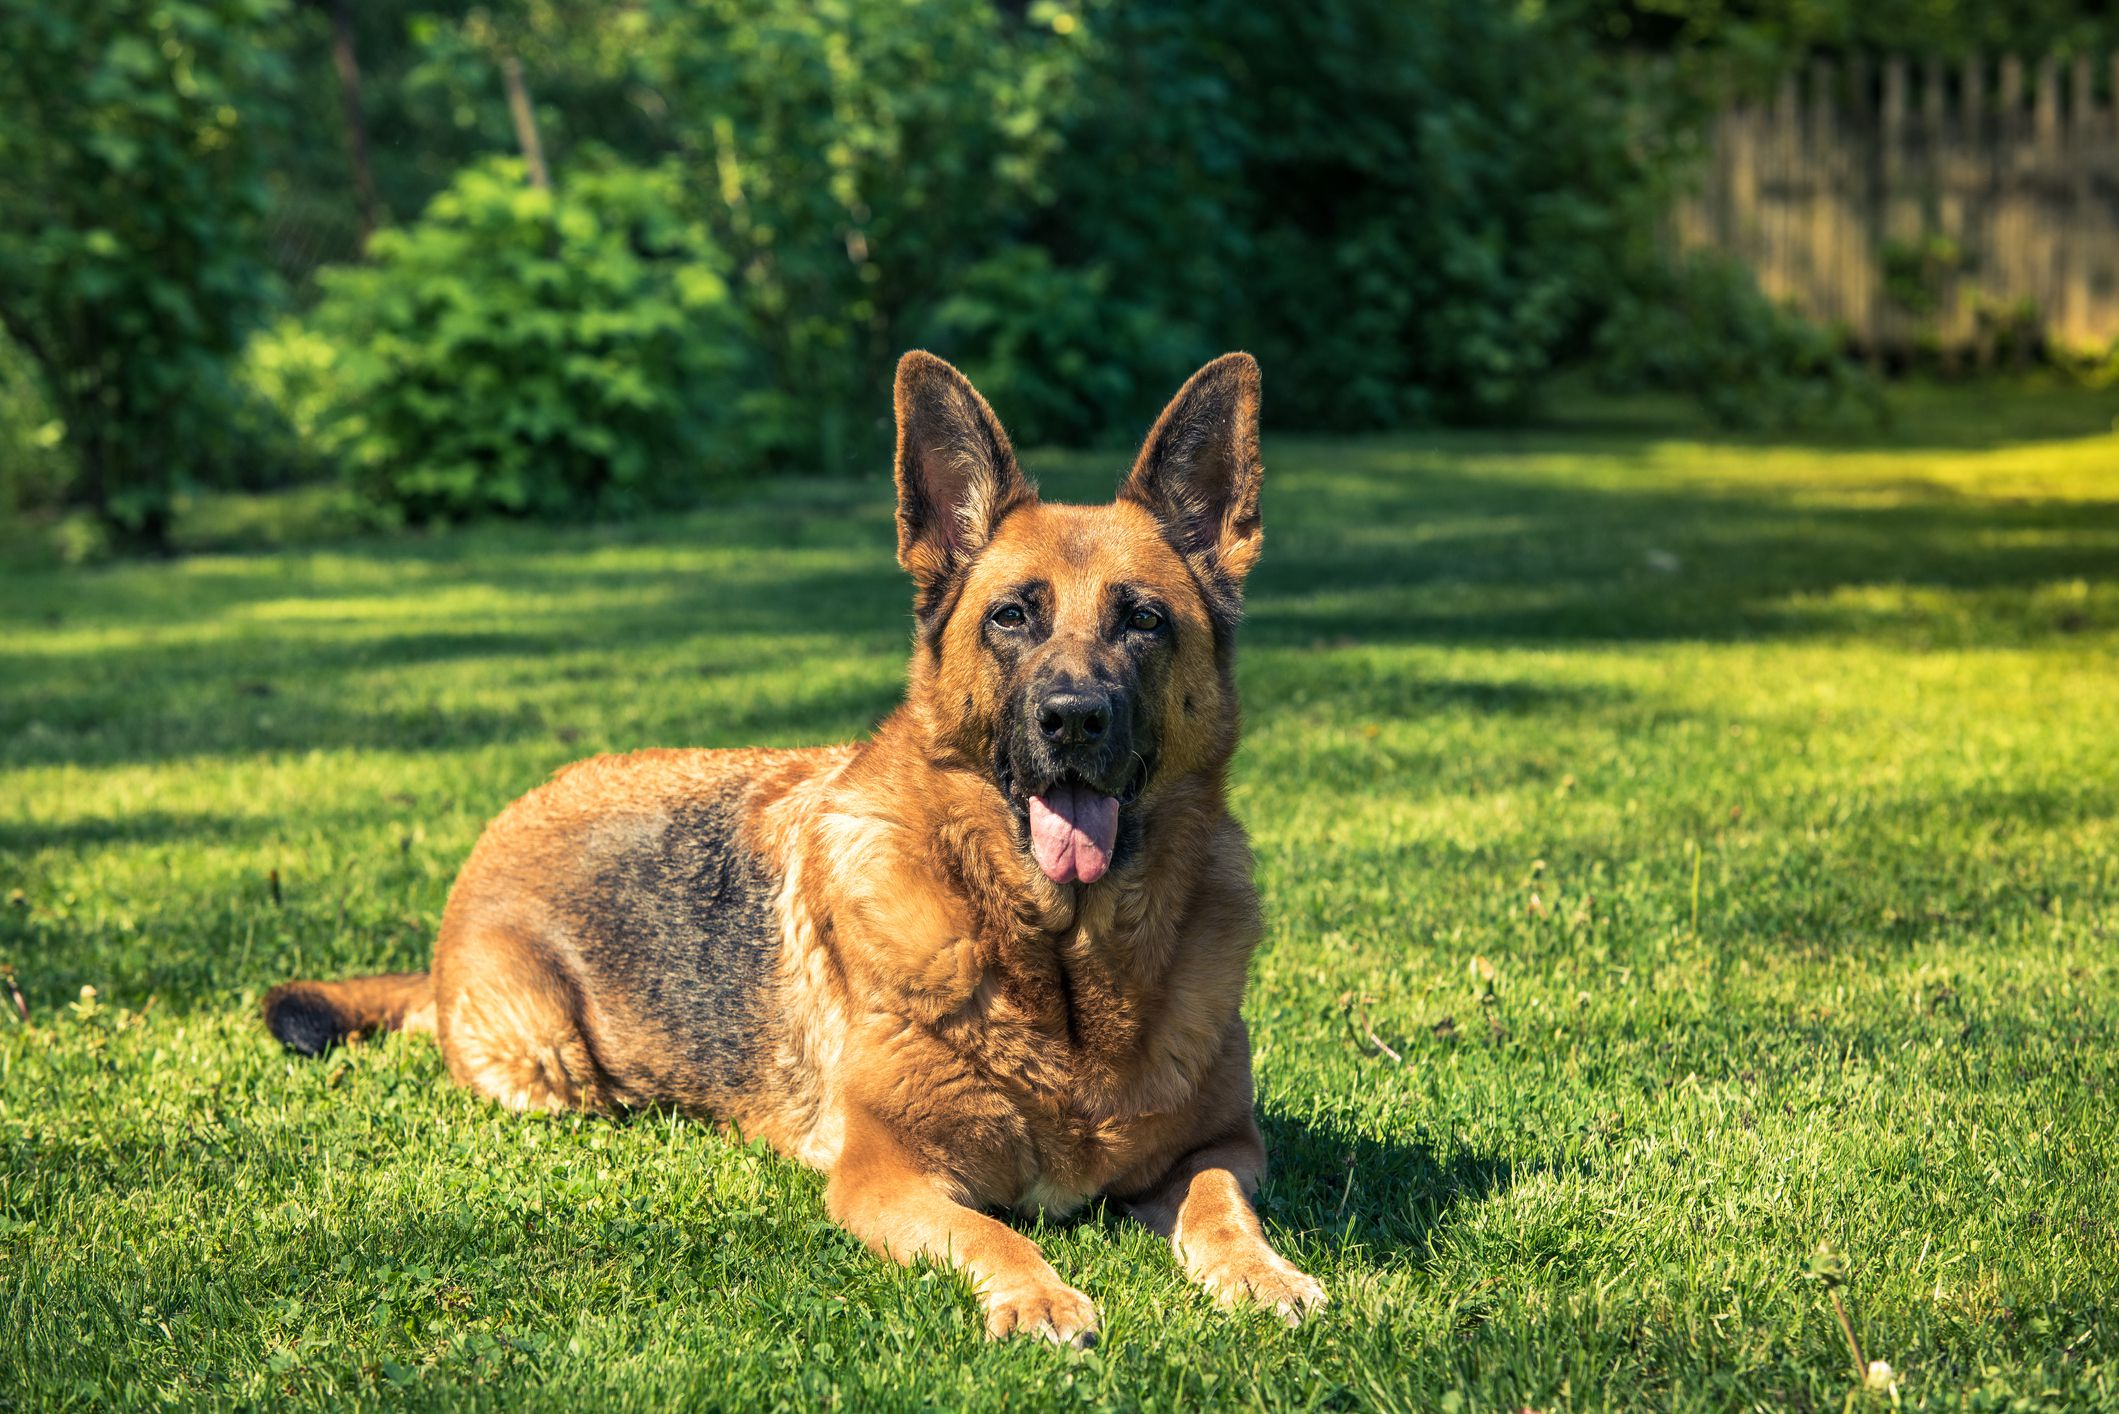 How to Adopt Retired Police Dogs